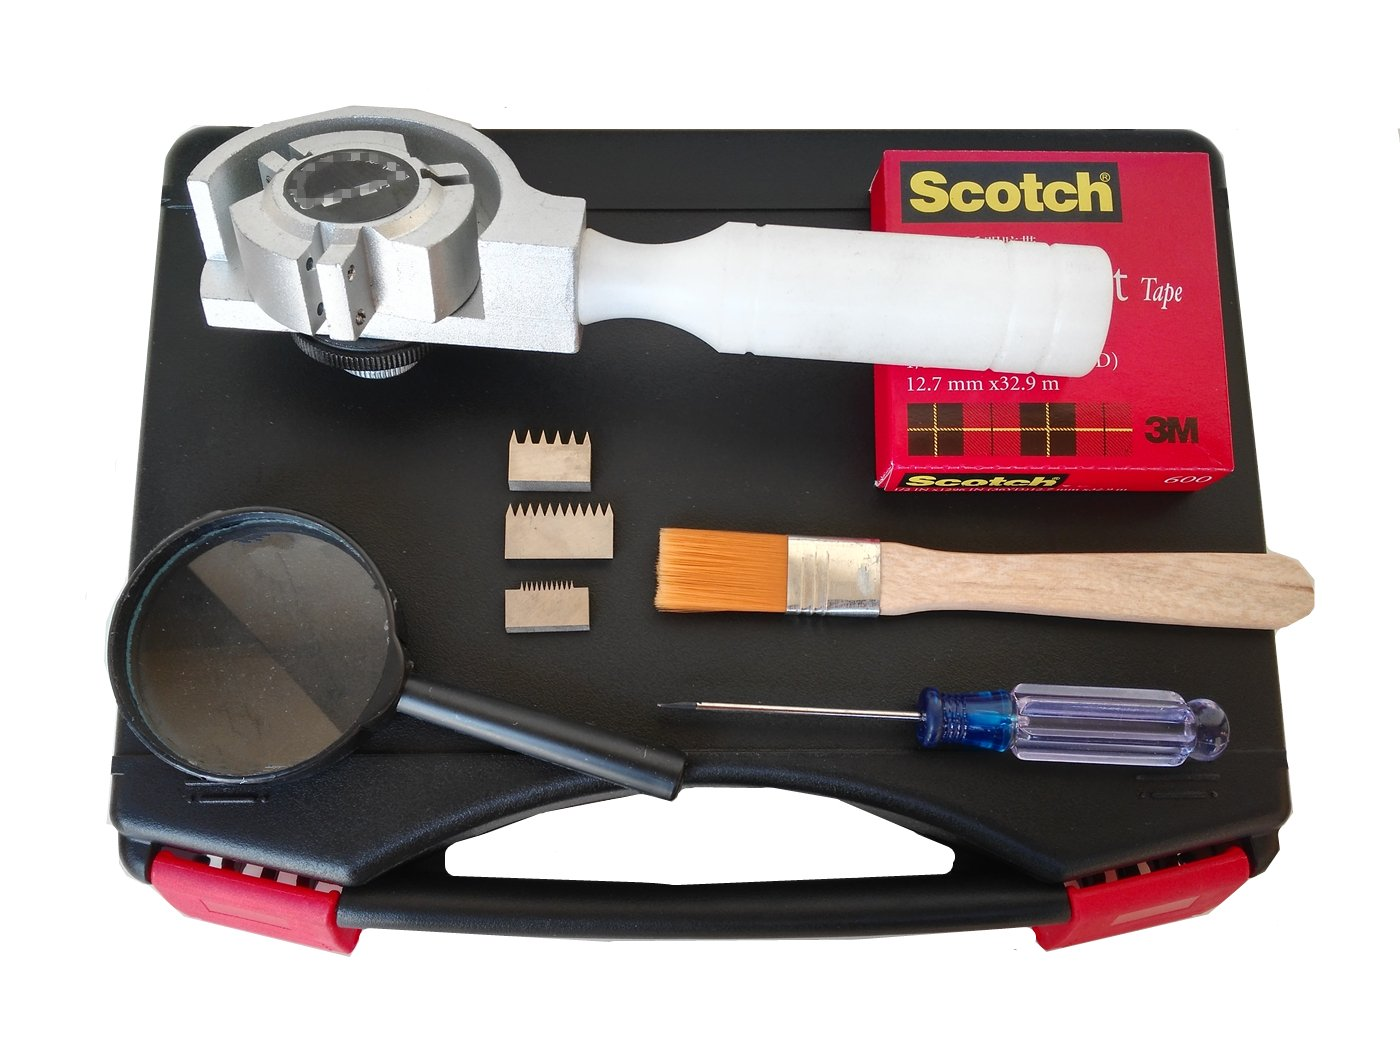 GLTL 3-in-1 Rotating Cross Hatch Adhesion Tester Cross-Cut Tester Kit with 1mm/2mm/3mm Blades